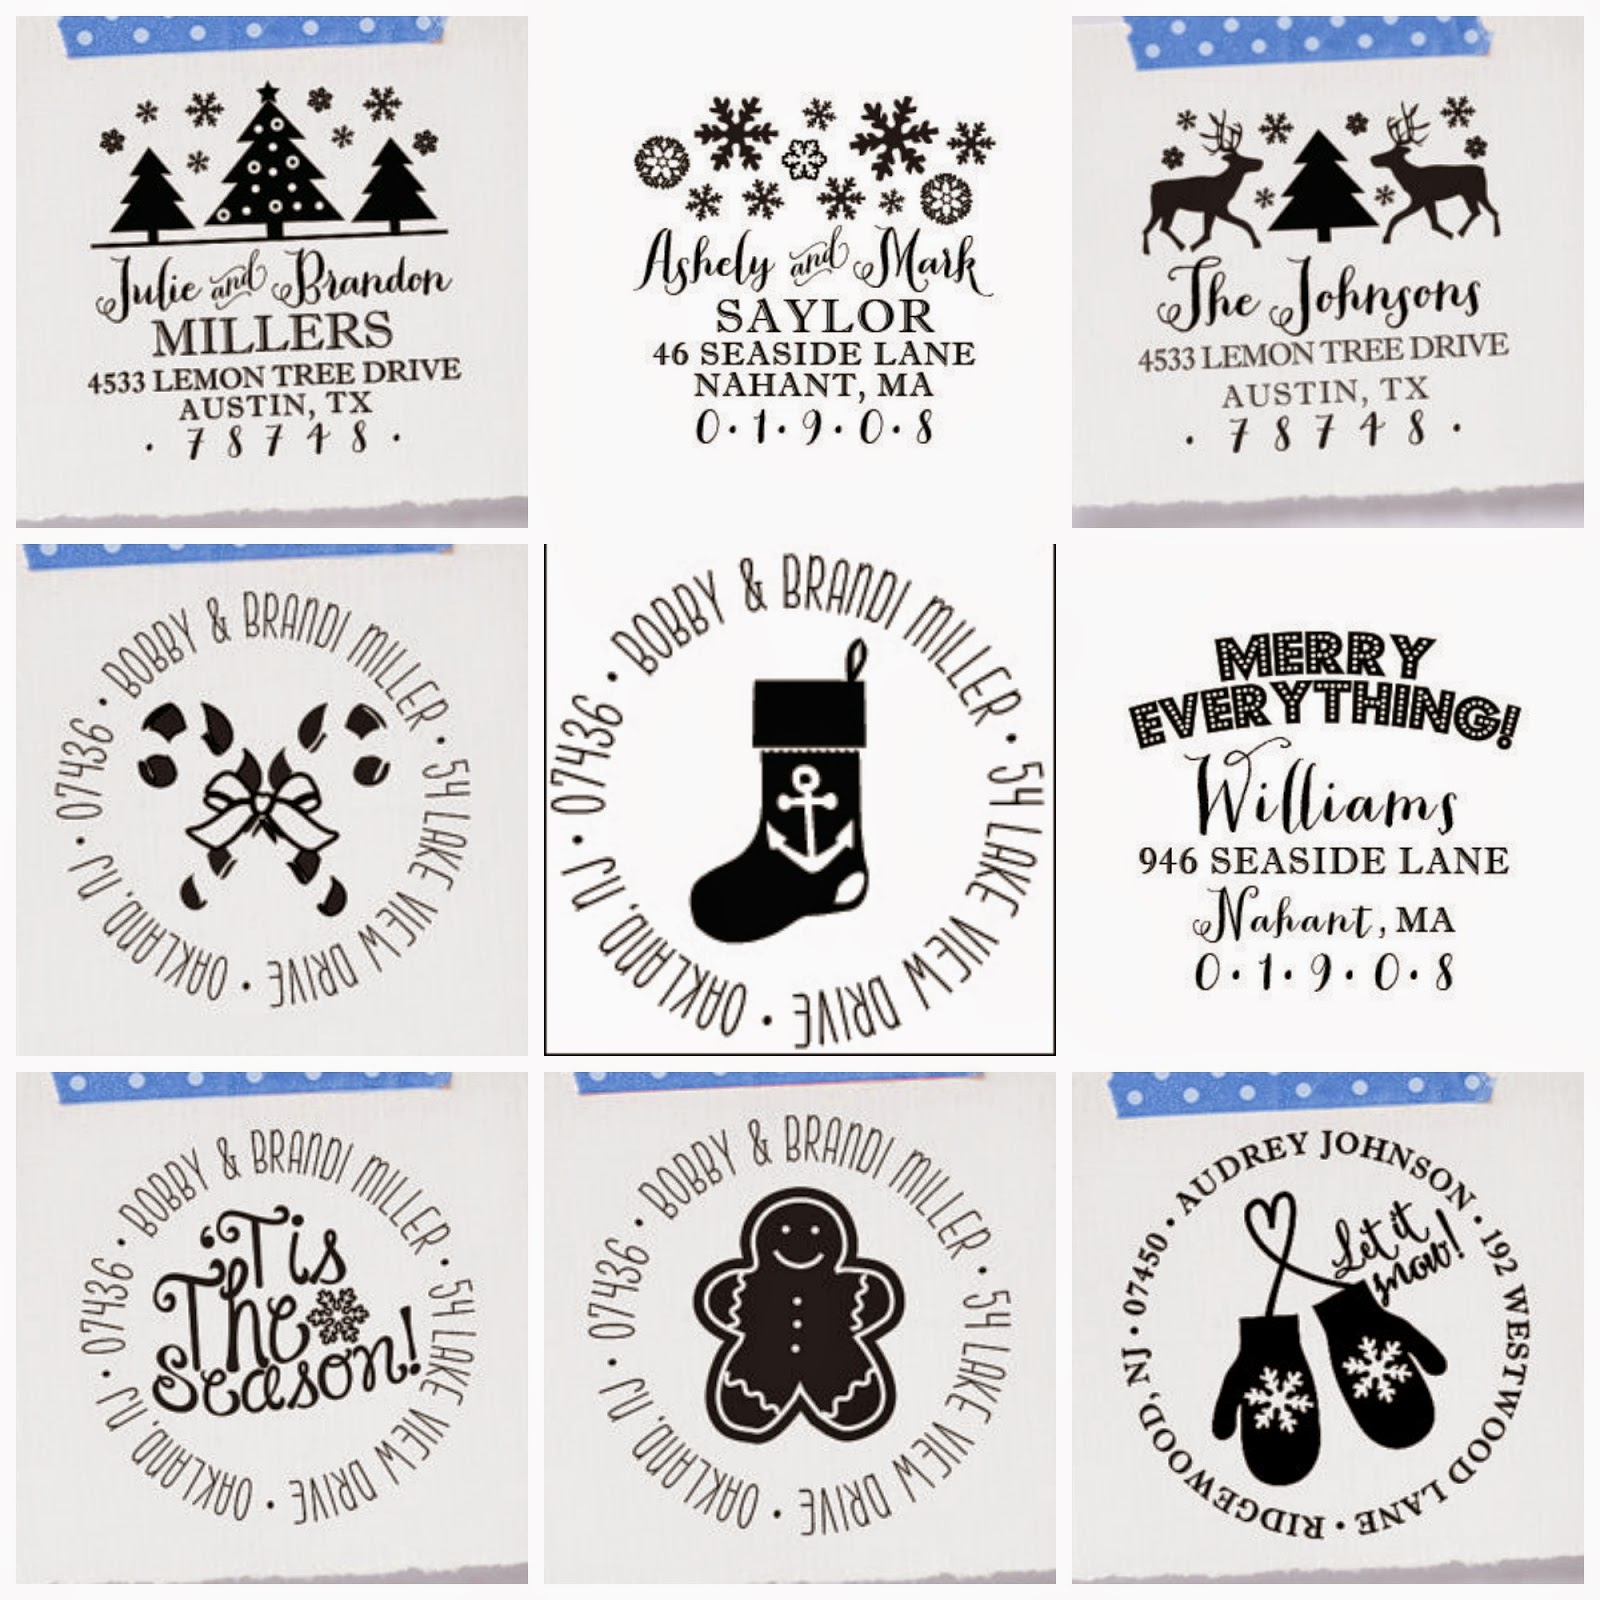 Holiday stamp giveaway from Brittany Lauren Design